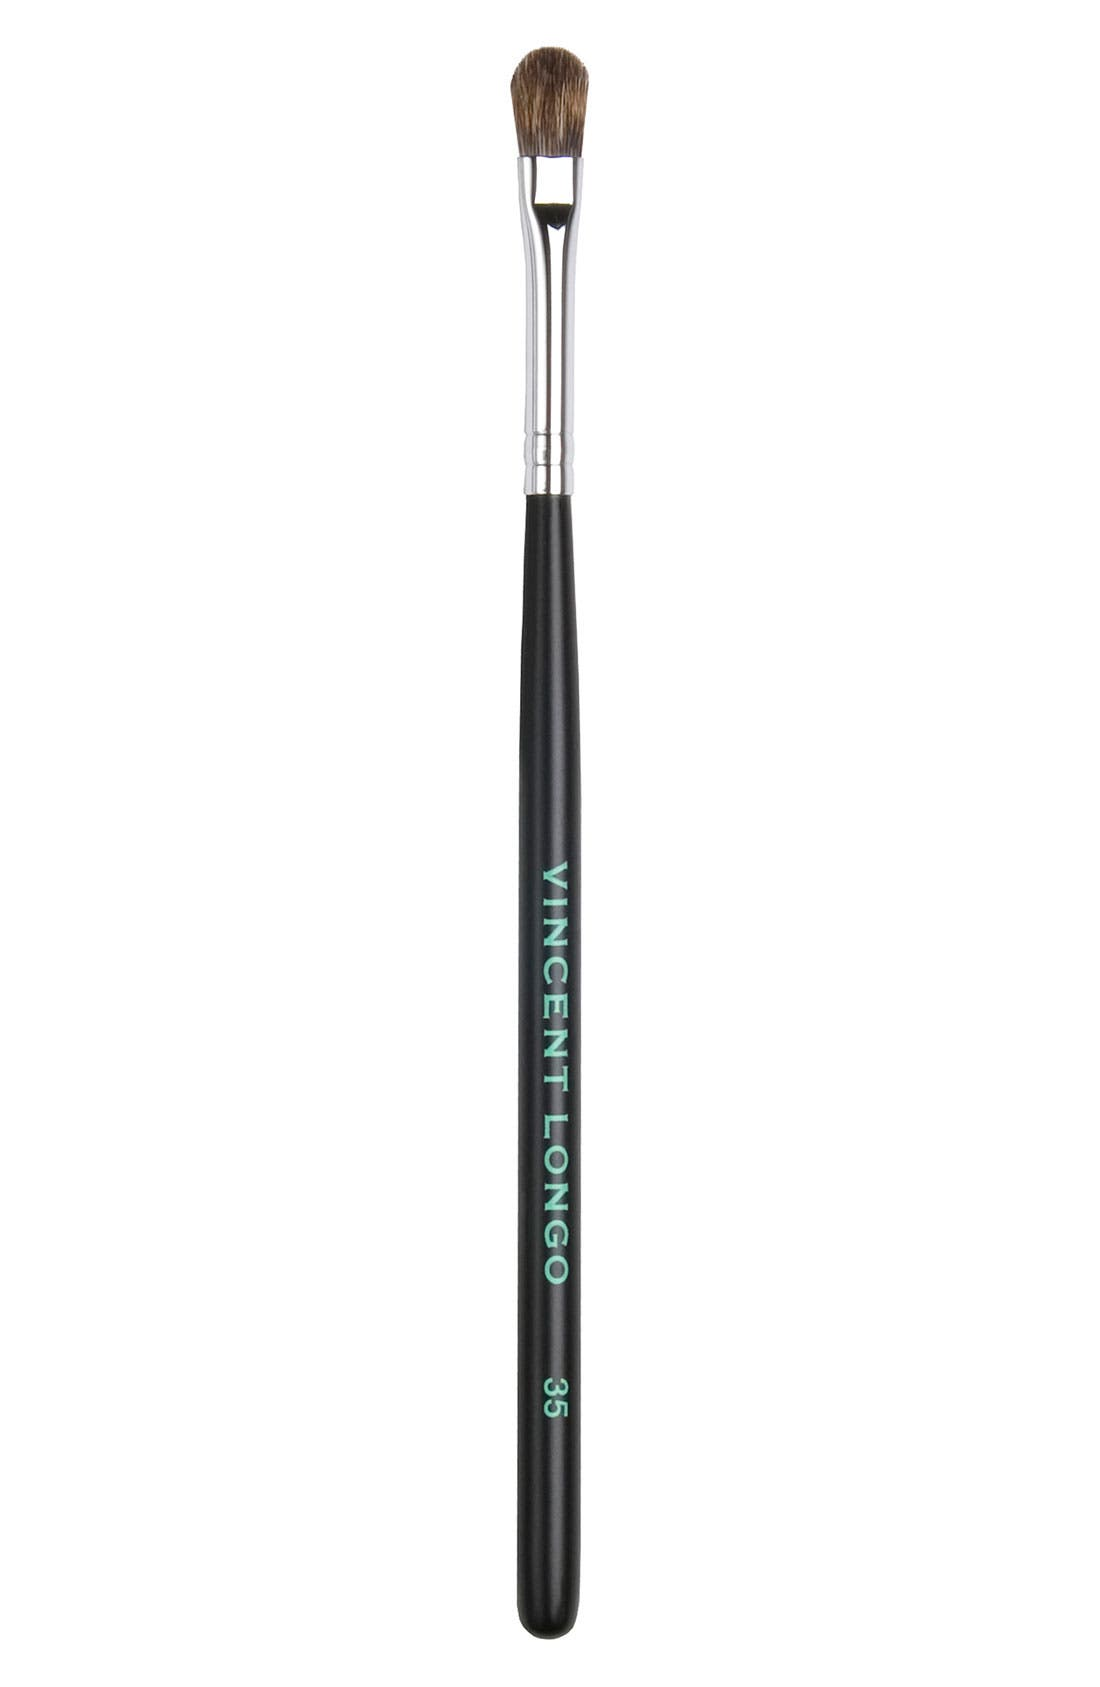 'Deluxe' Lip Brush #35,                             Main thumbnail 1, color,                             000